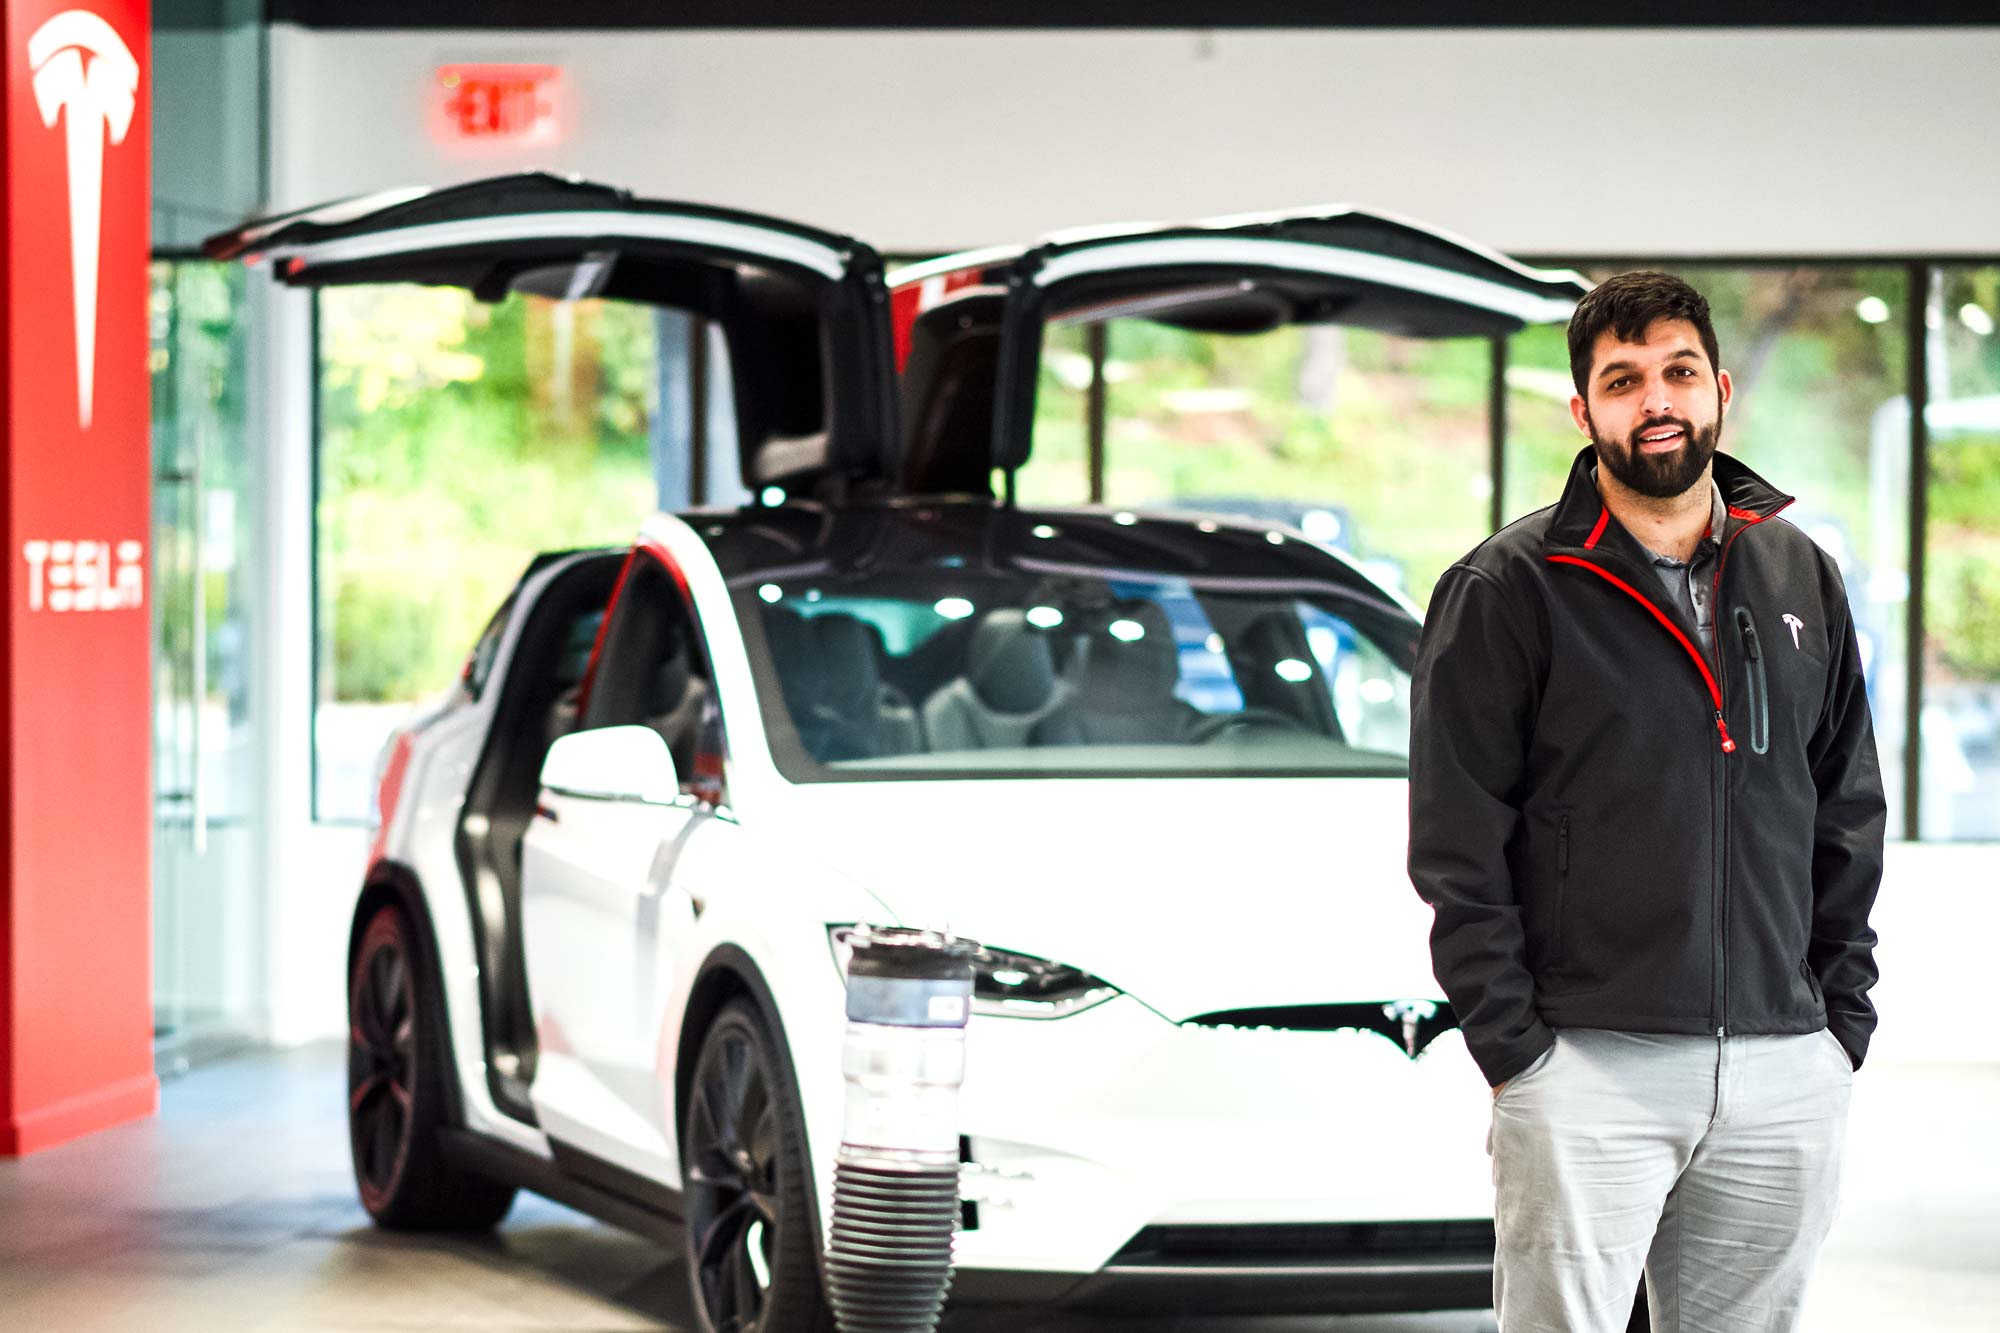 Jacob Redding in front of a white Tesla vehicle